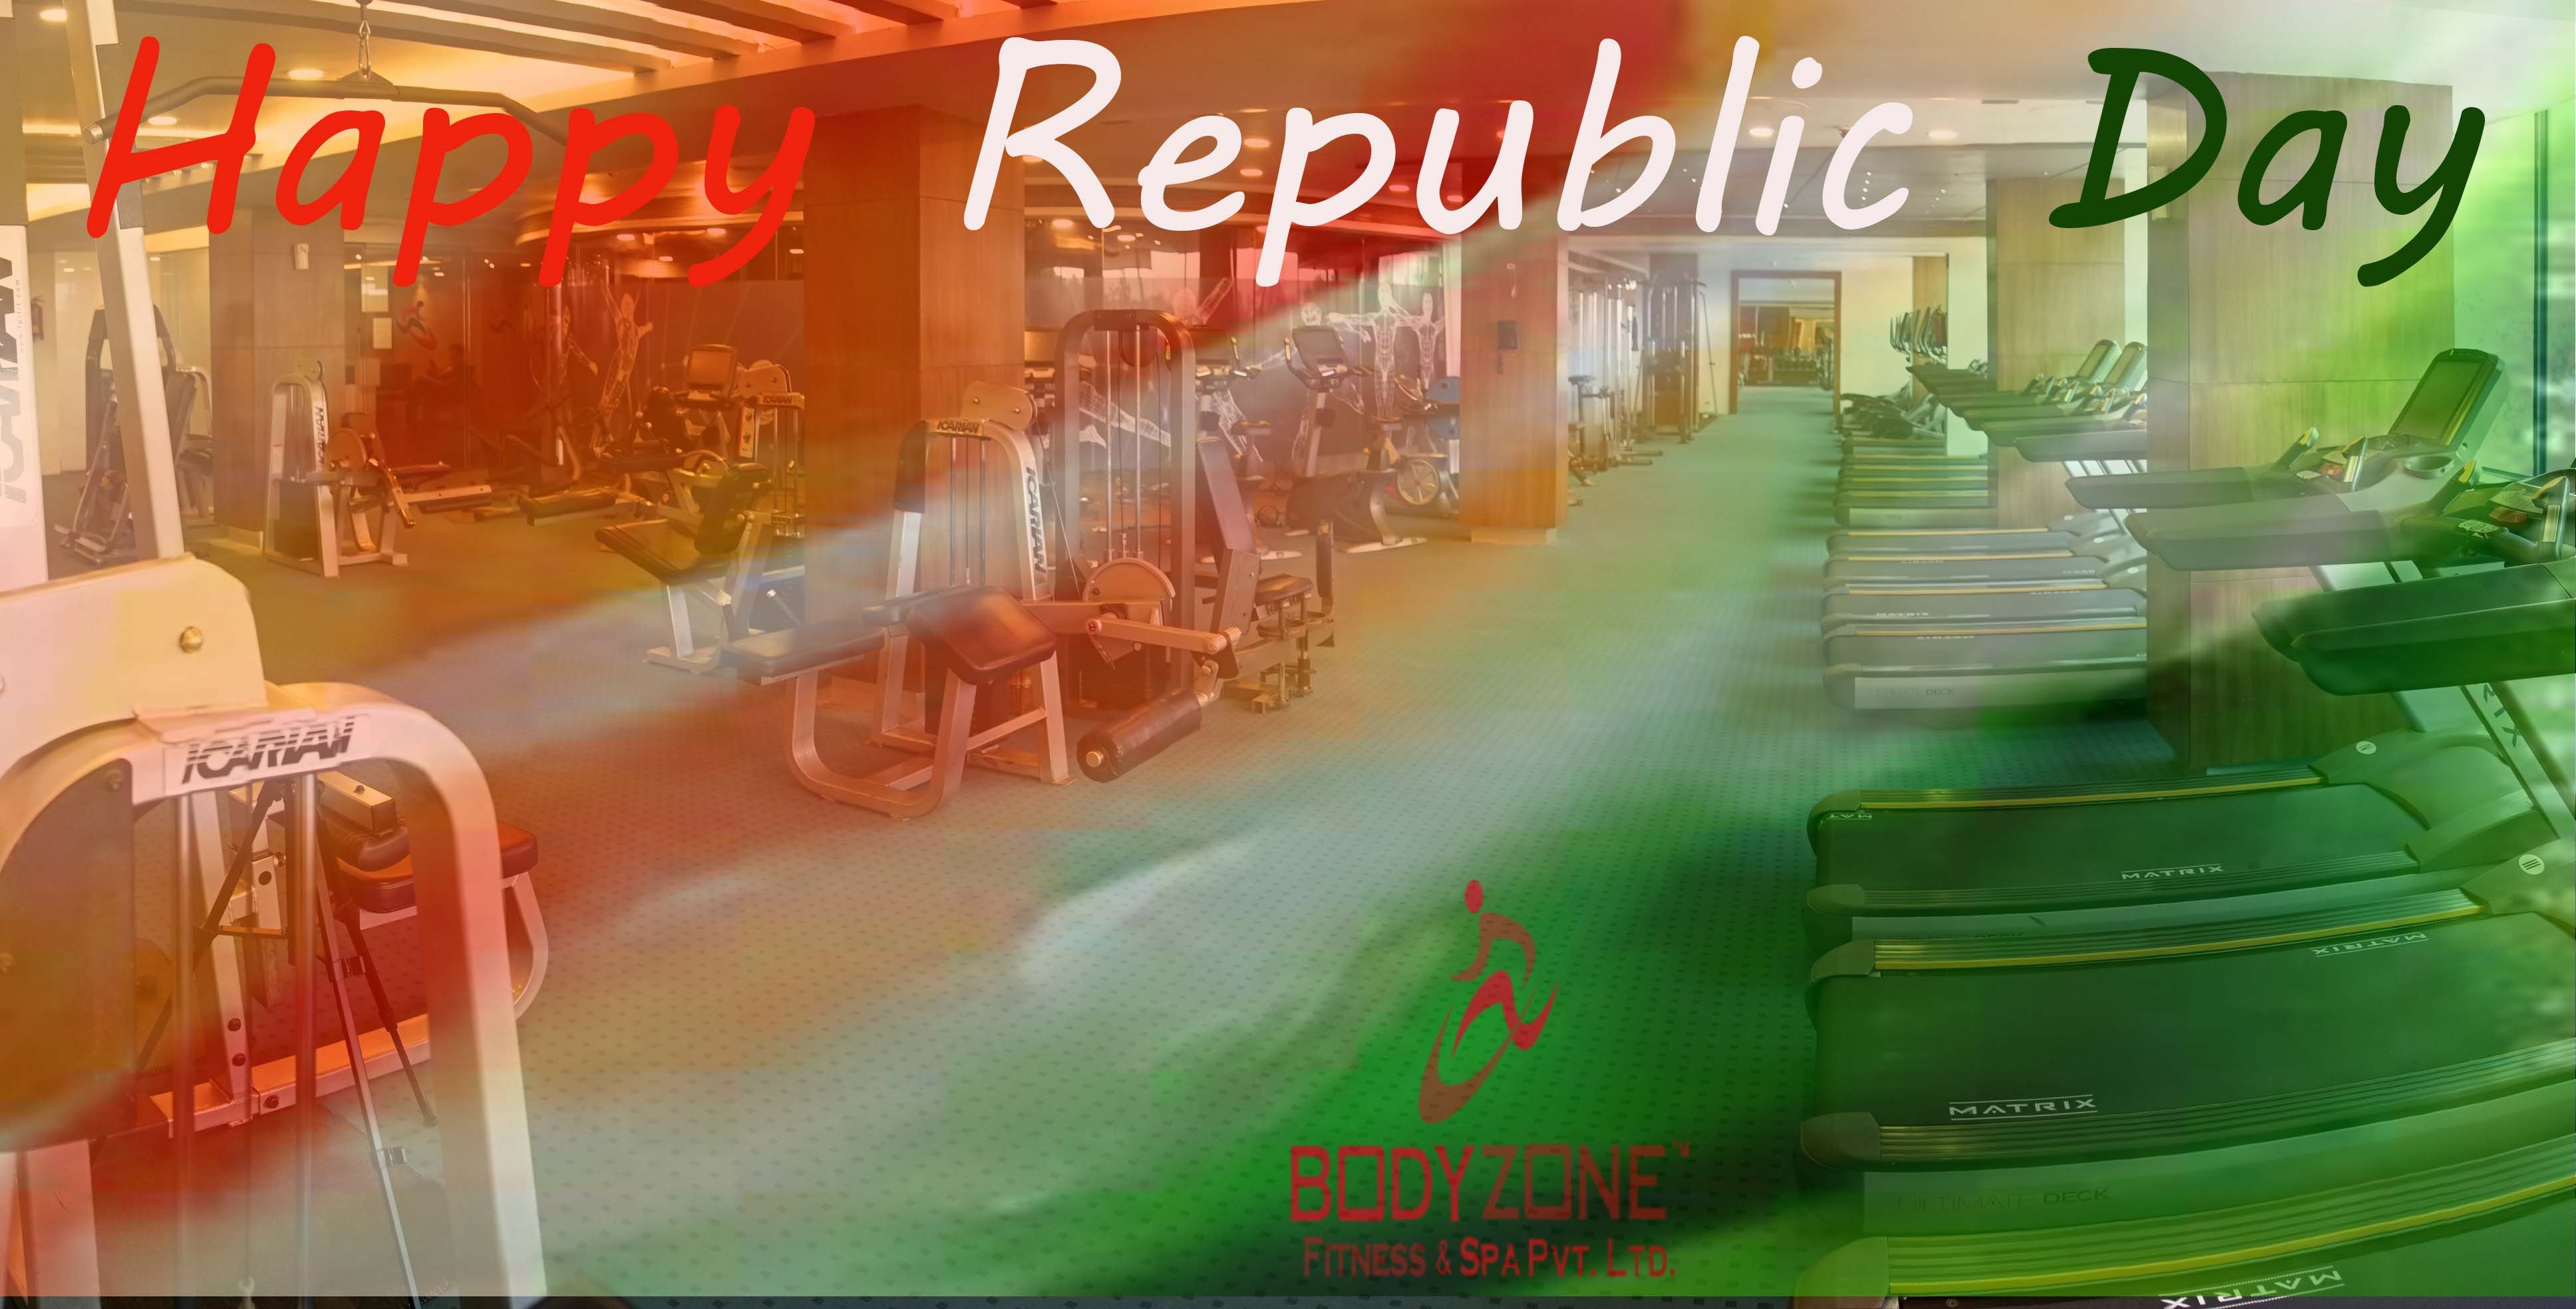 Jai Hind and a very happy Republic Day from team Body Zone